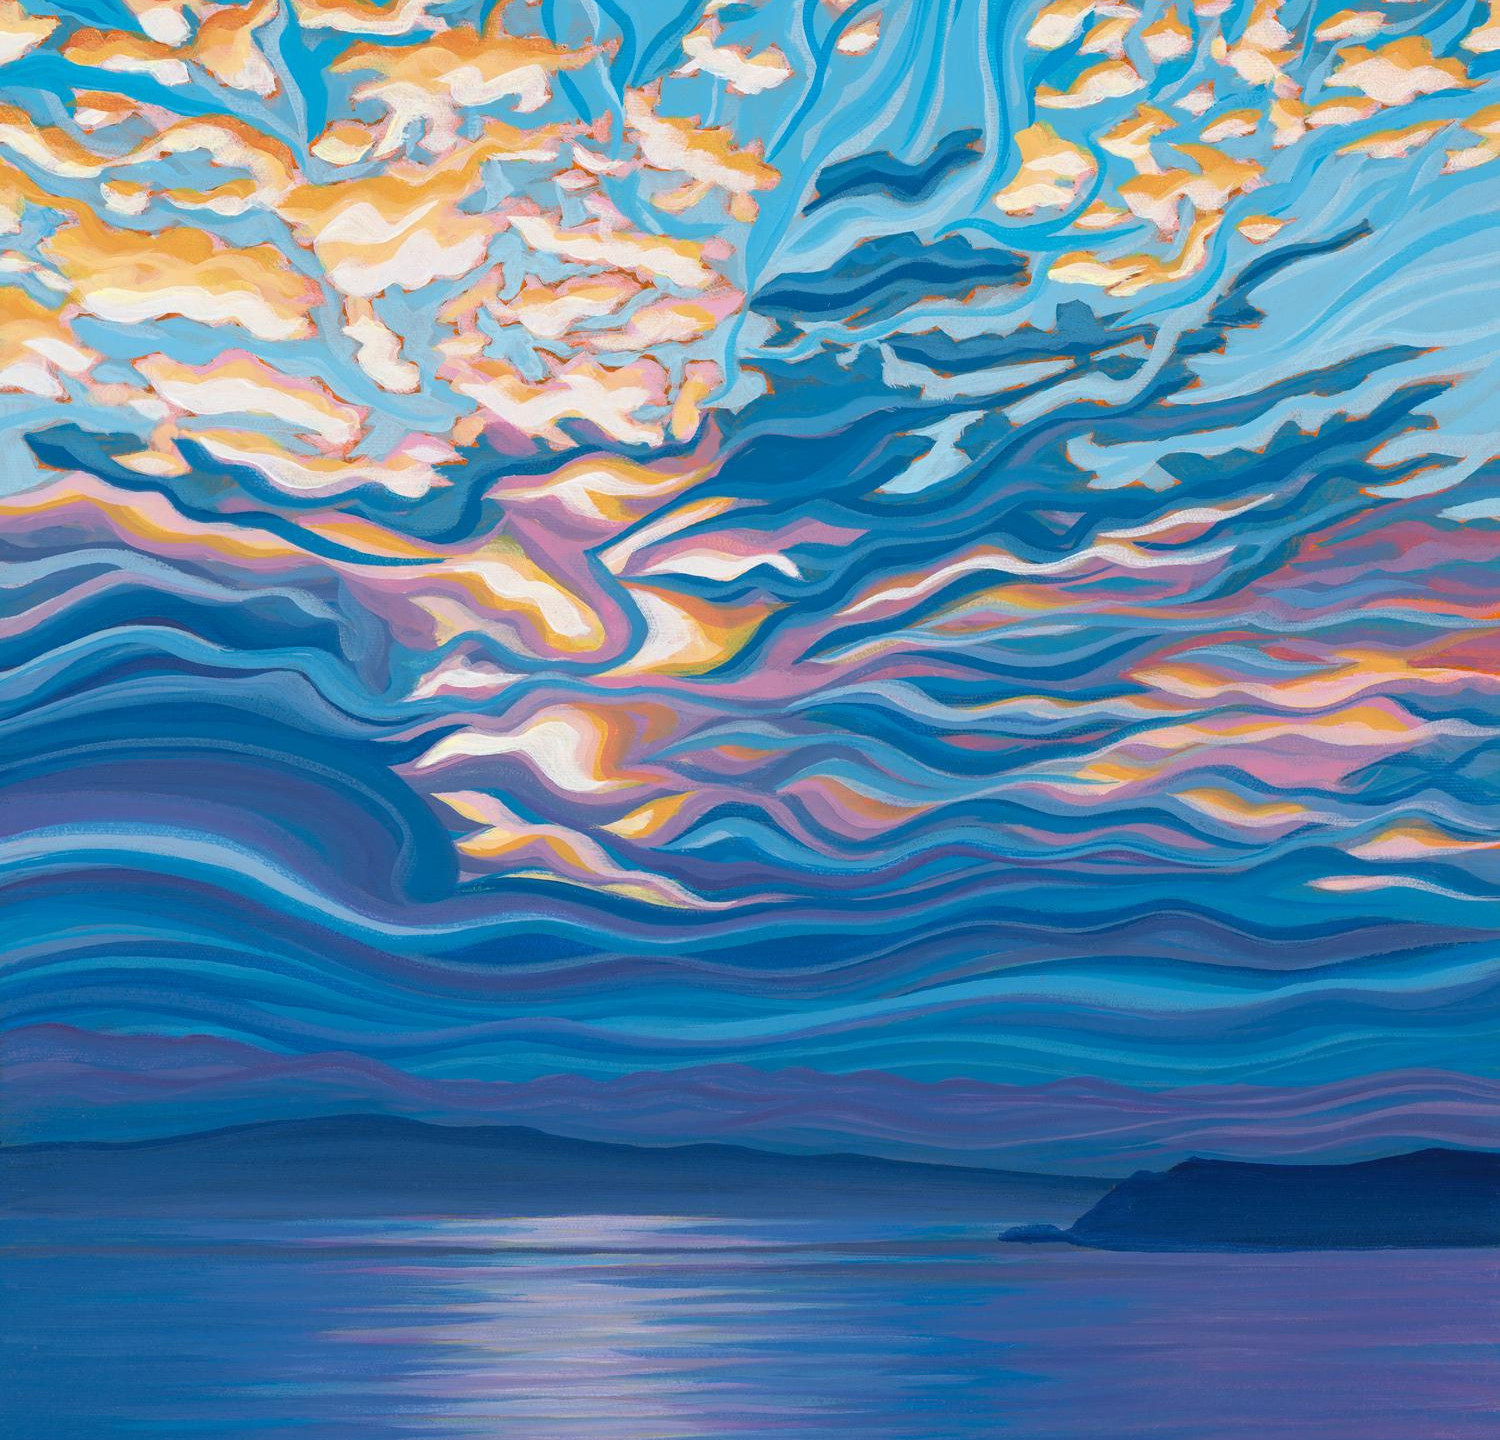 Lathrop, Mike - Sun in the Clouds on the